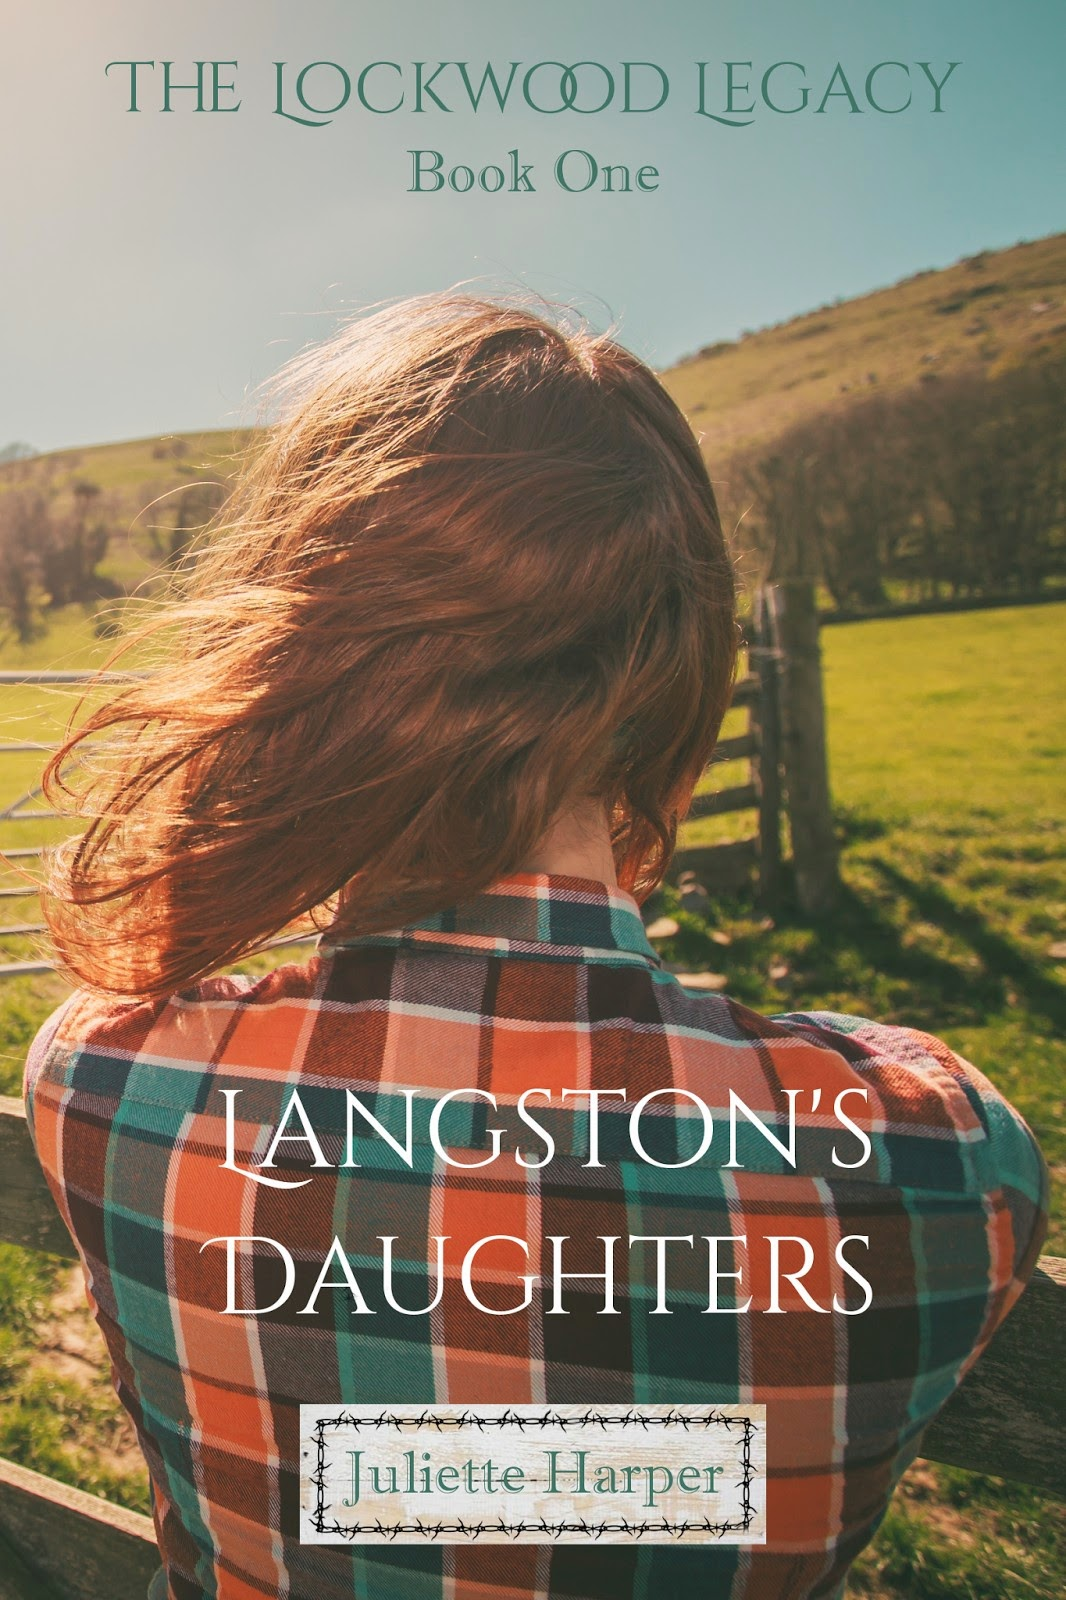 https://www.goodreads.com/book/show/23665824-langston-s-daughters